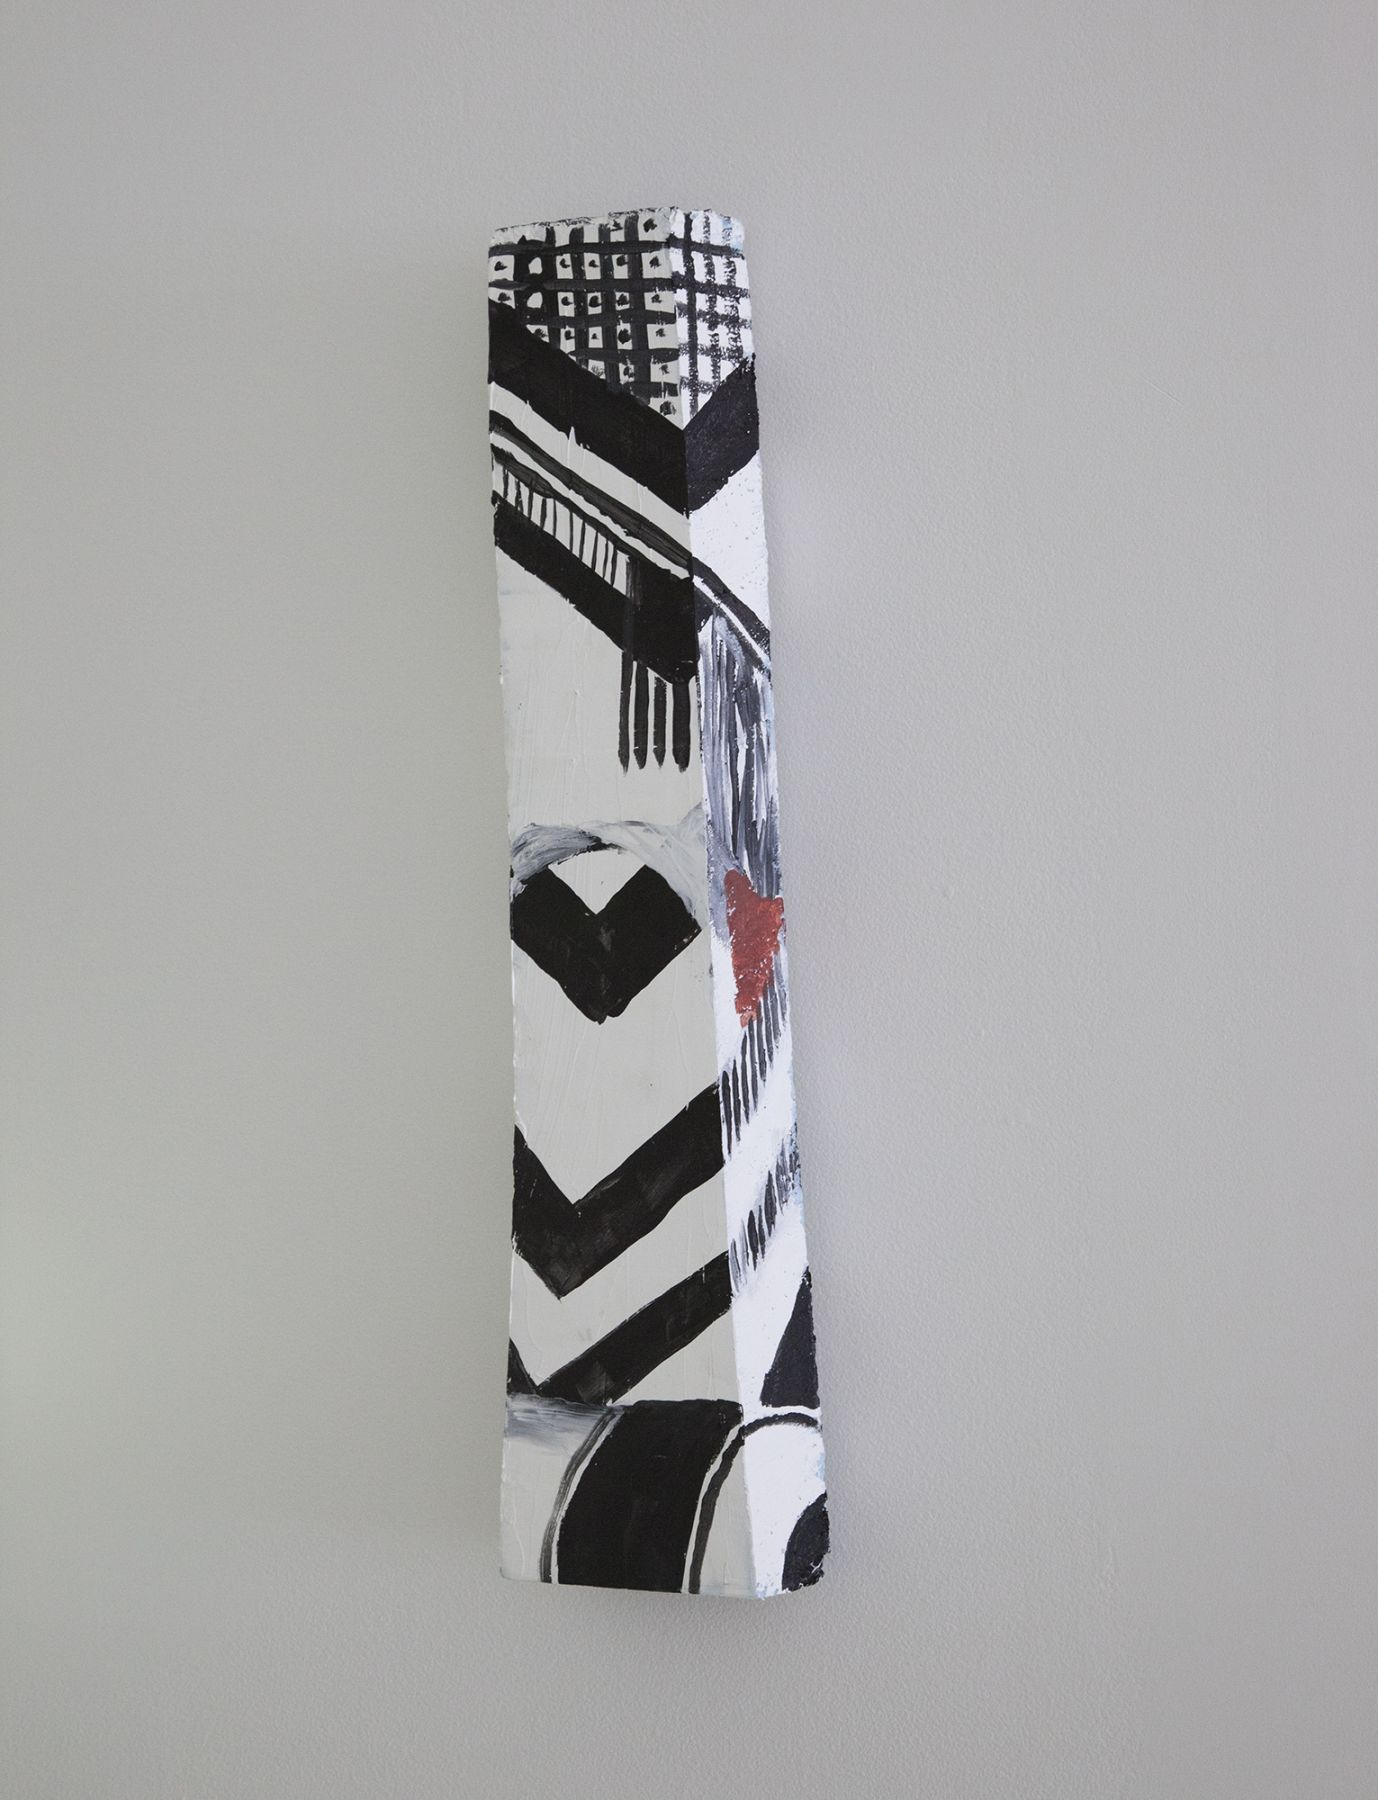 Trisha Baga, Untitled, 2012, Acrylic painted foam, 24 x 5 7/8 x 2 inches, (61 x 14.9 x 5.1 cm)